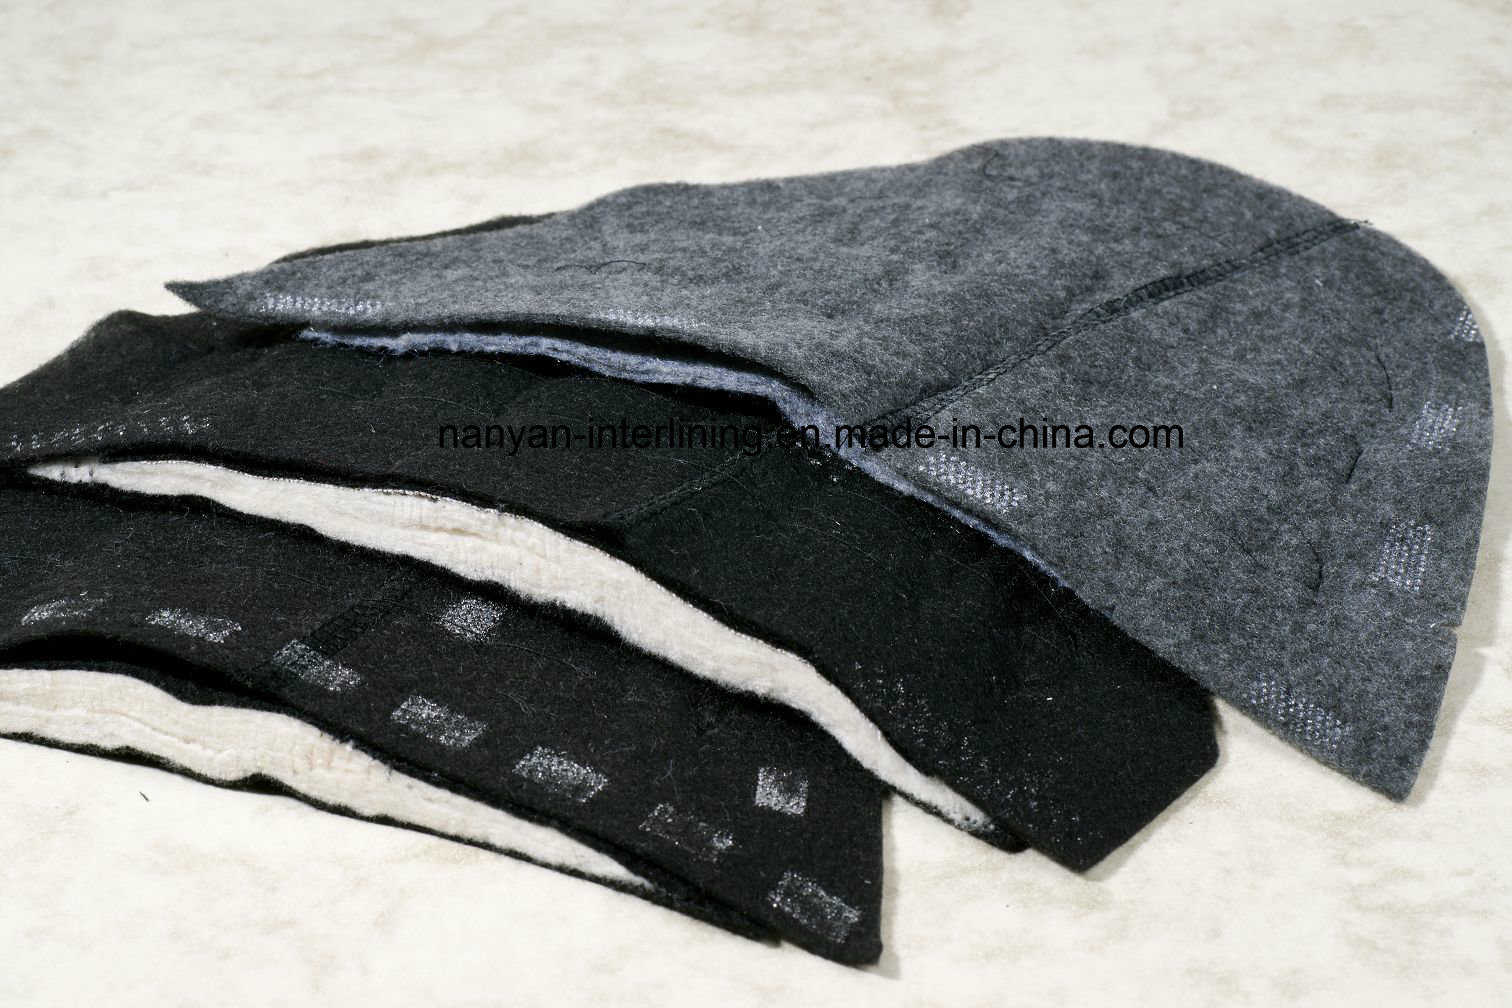 Shoulder Pads for Garment Interlining